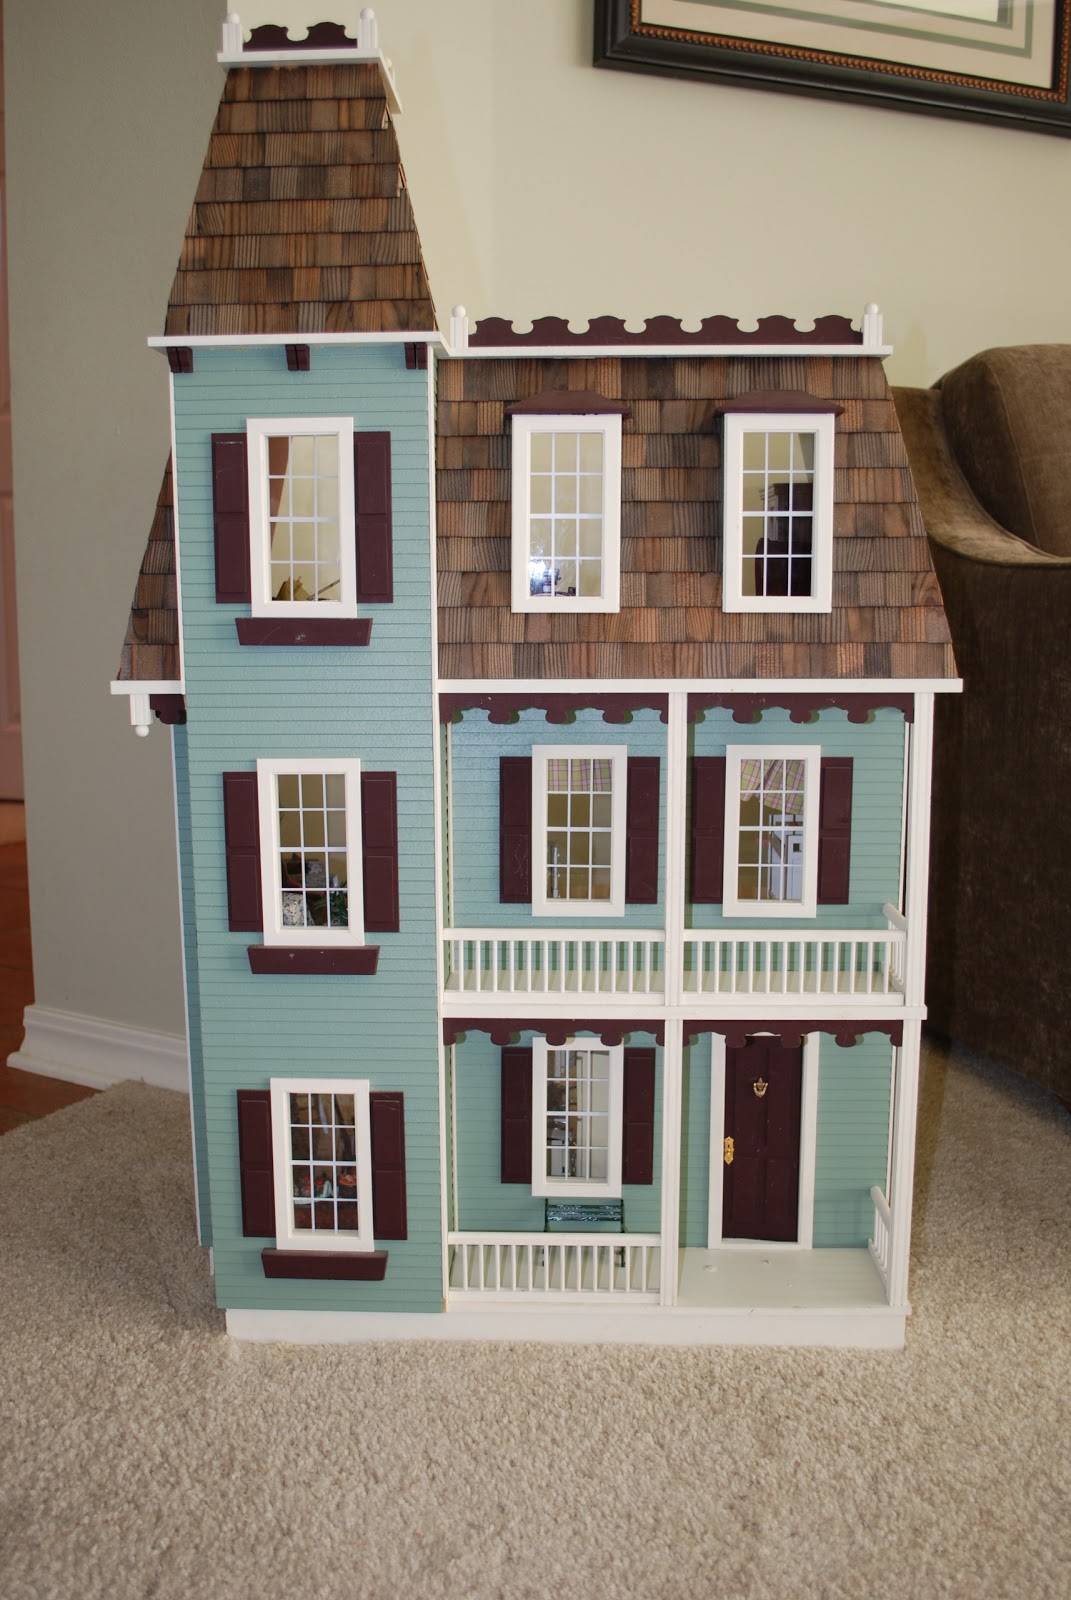 Kitchen Dollhouse Furniture Similiar Hobby Lobby Dollhouse Beds Keywords